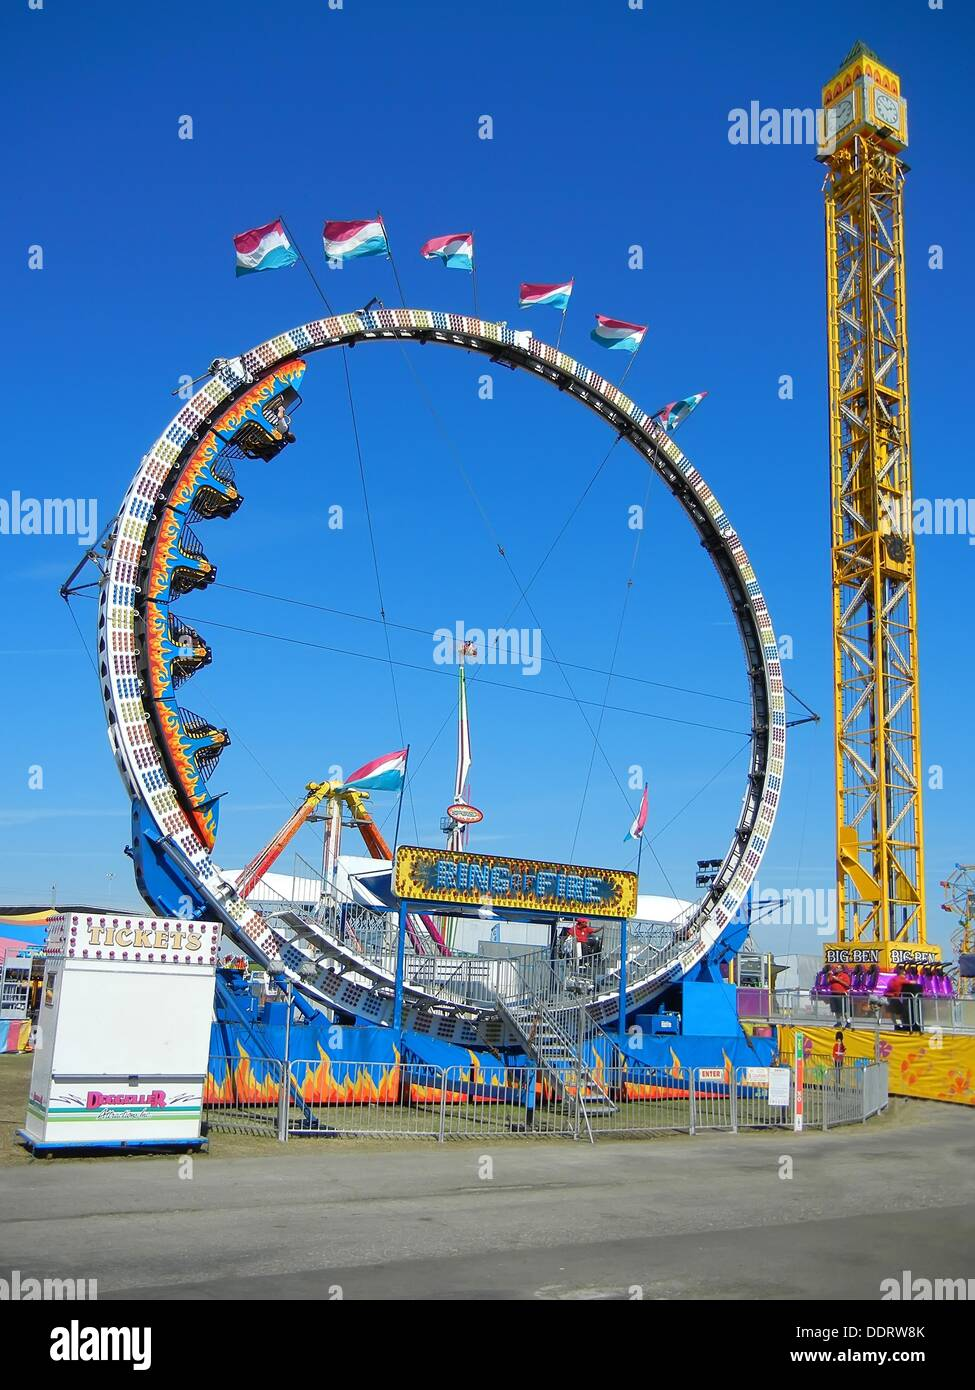 Florida State Fair Tampa Florida Ring of Fire ride Stock Photo